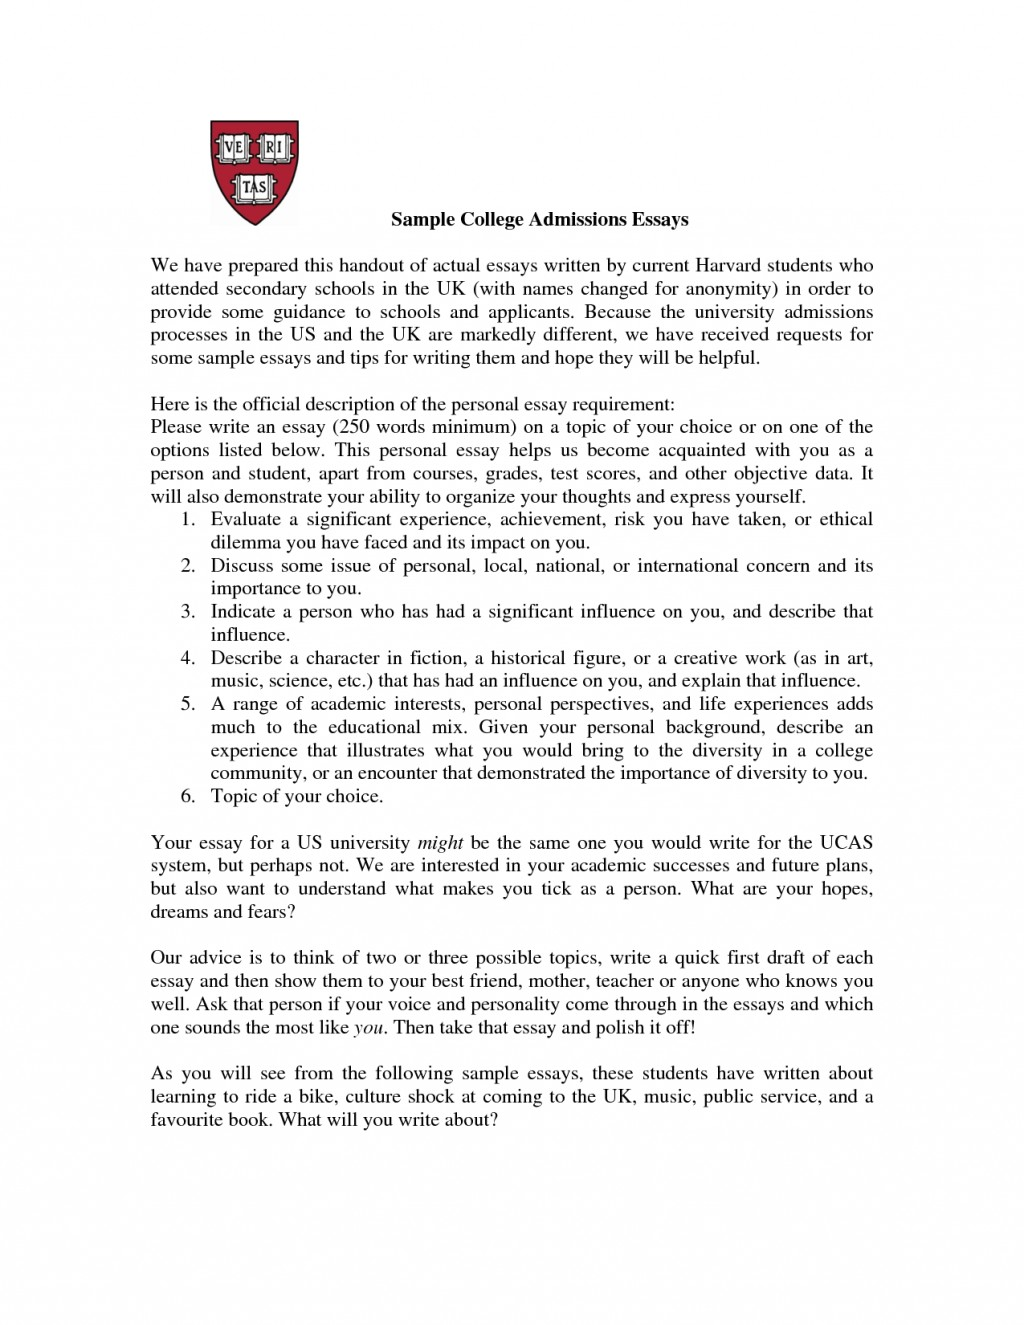 003 Iafr4c5bwr Essay Example Harvard Essays That Staggering Worked University Common App Business School Large